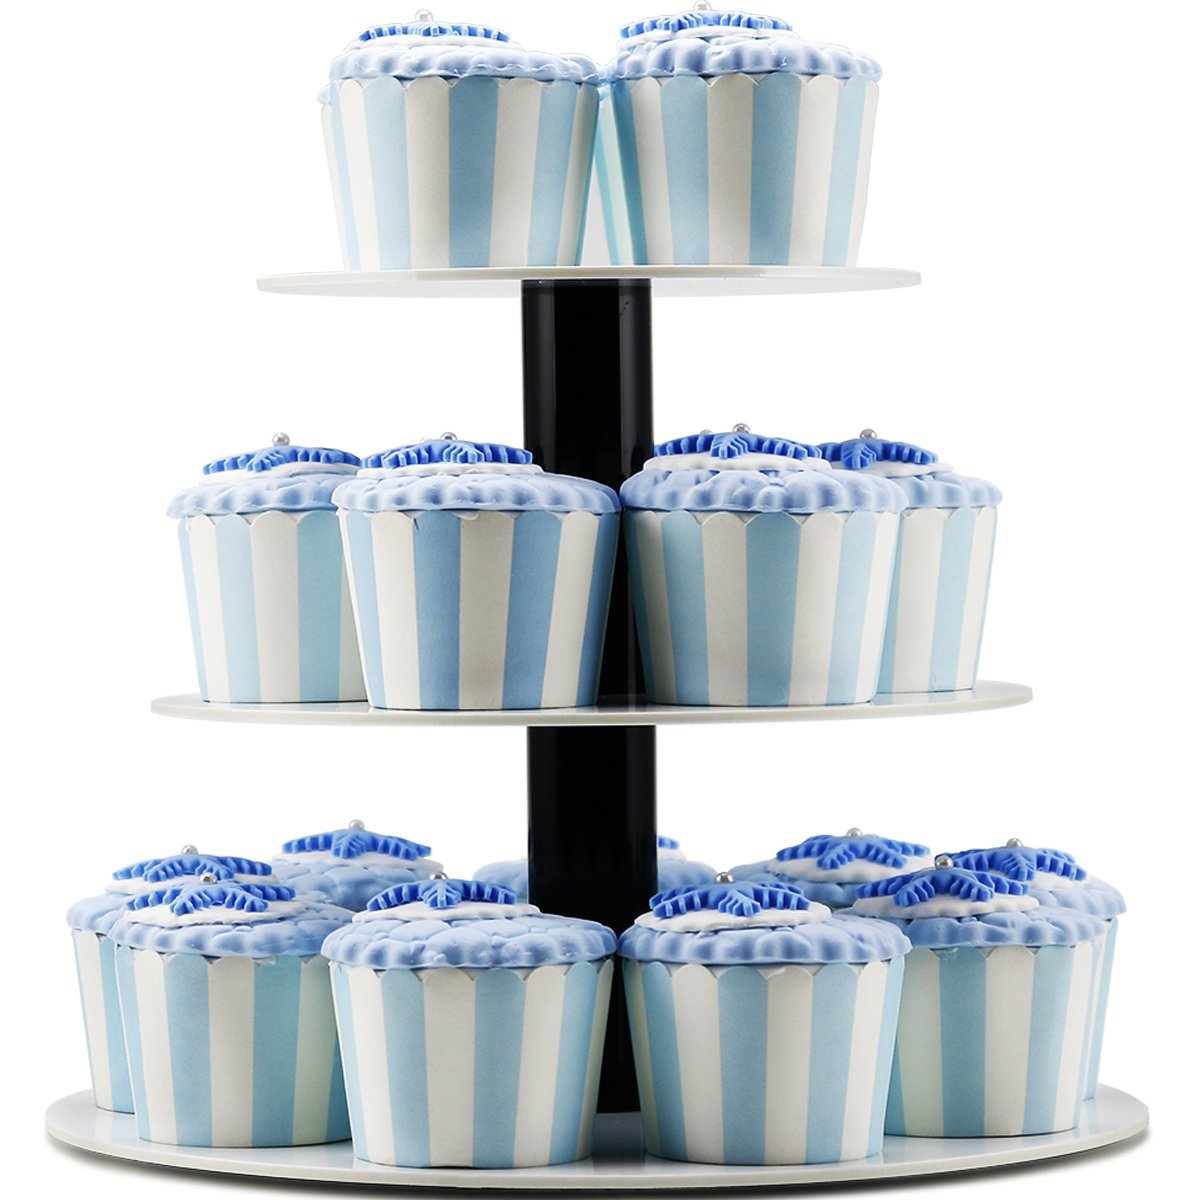 Dessert Stand,3 Tier Round White Dessert Stand, Wedding Pastry Stands for Cupcakes Dessert,Pastry, Tiered Acrylic Plastic Serving Dessert Stand For Birthday Party DYCacrlic